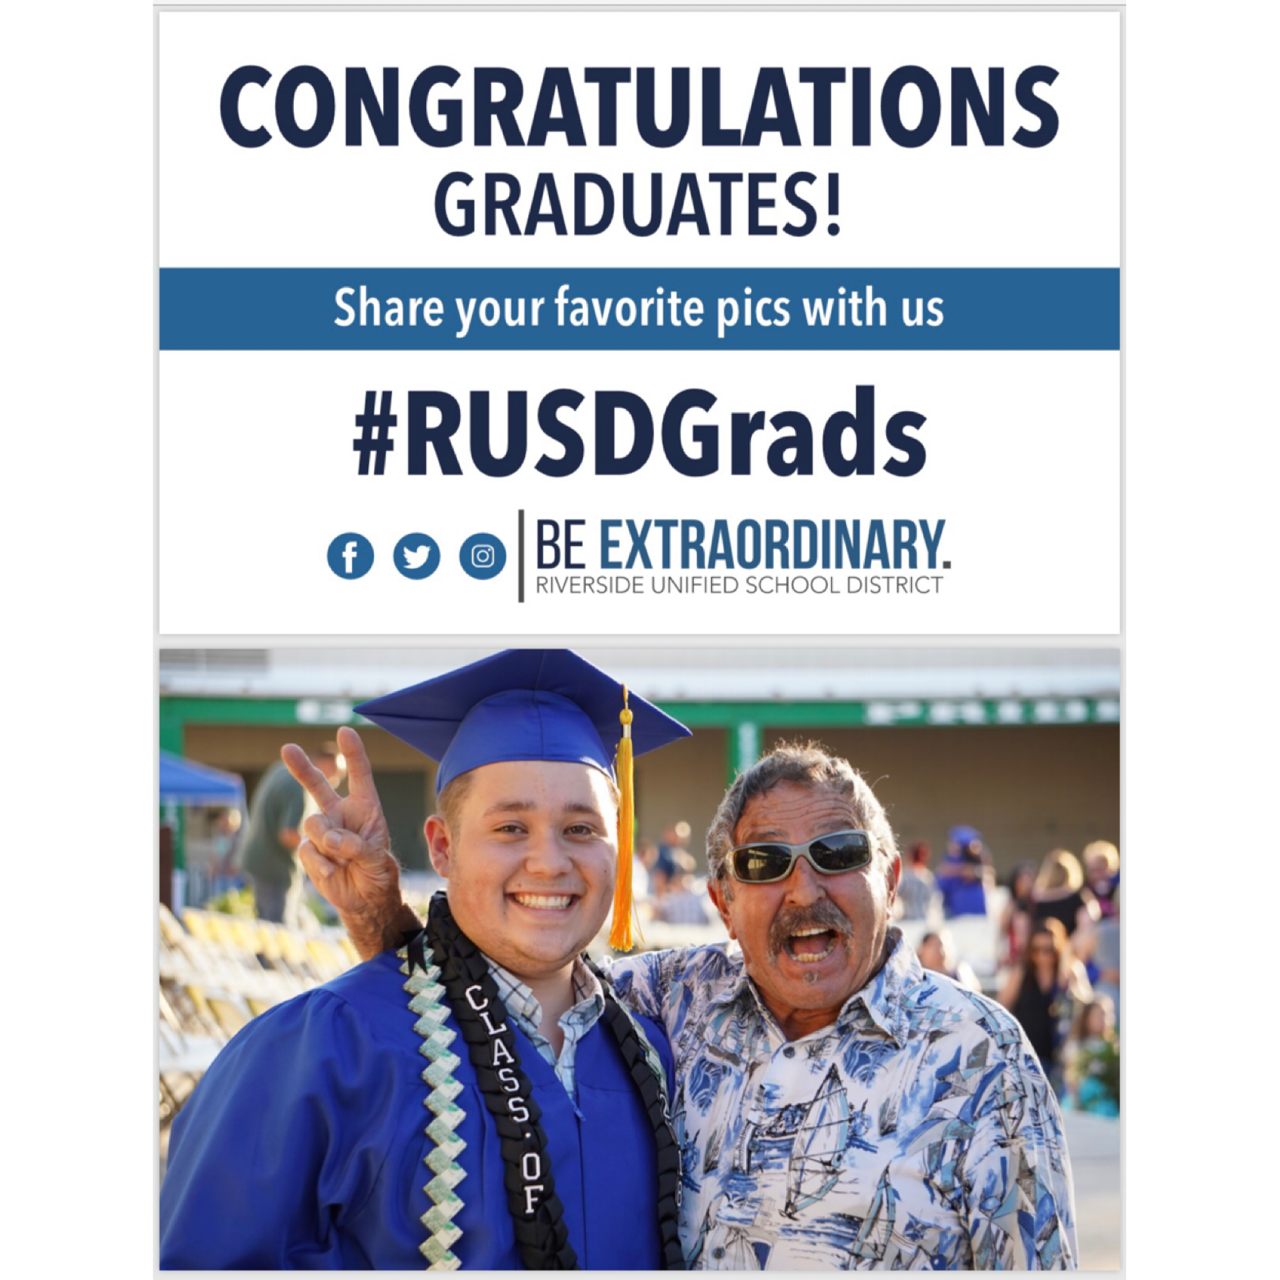 Arlington Class of 2019 Commencement is Wednesday, 5/29 at 6 p.m. at Ramona H.S.